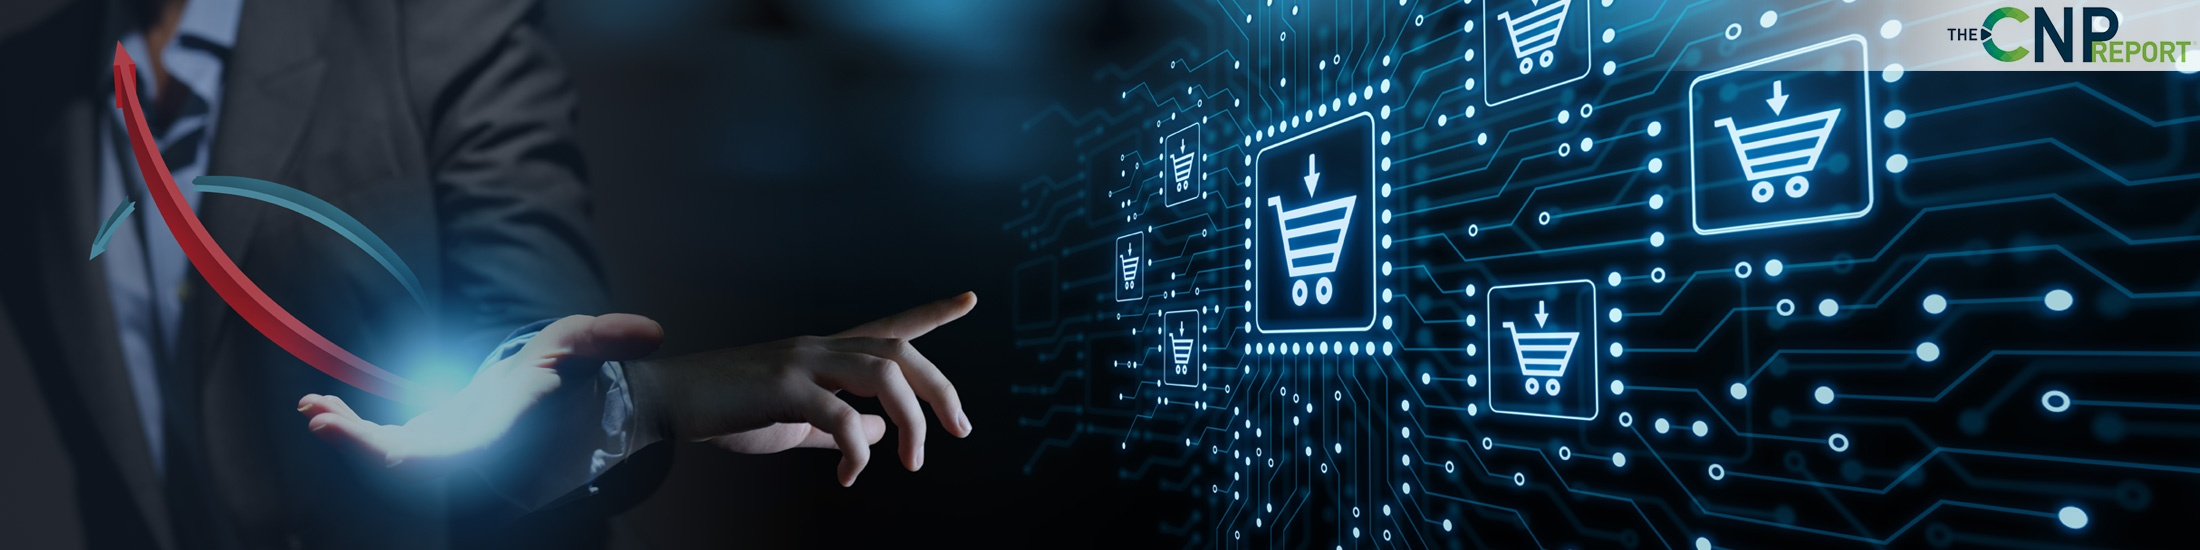 Holiday Digital Commerce Off to Another Record-Breaking Start in U.S.